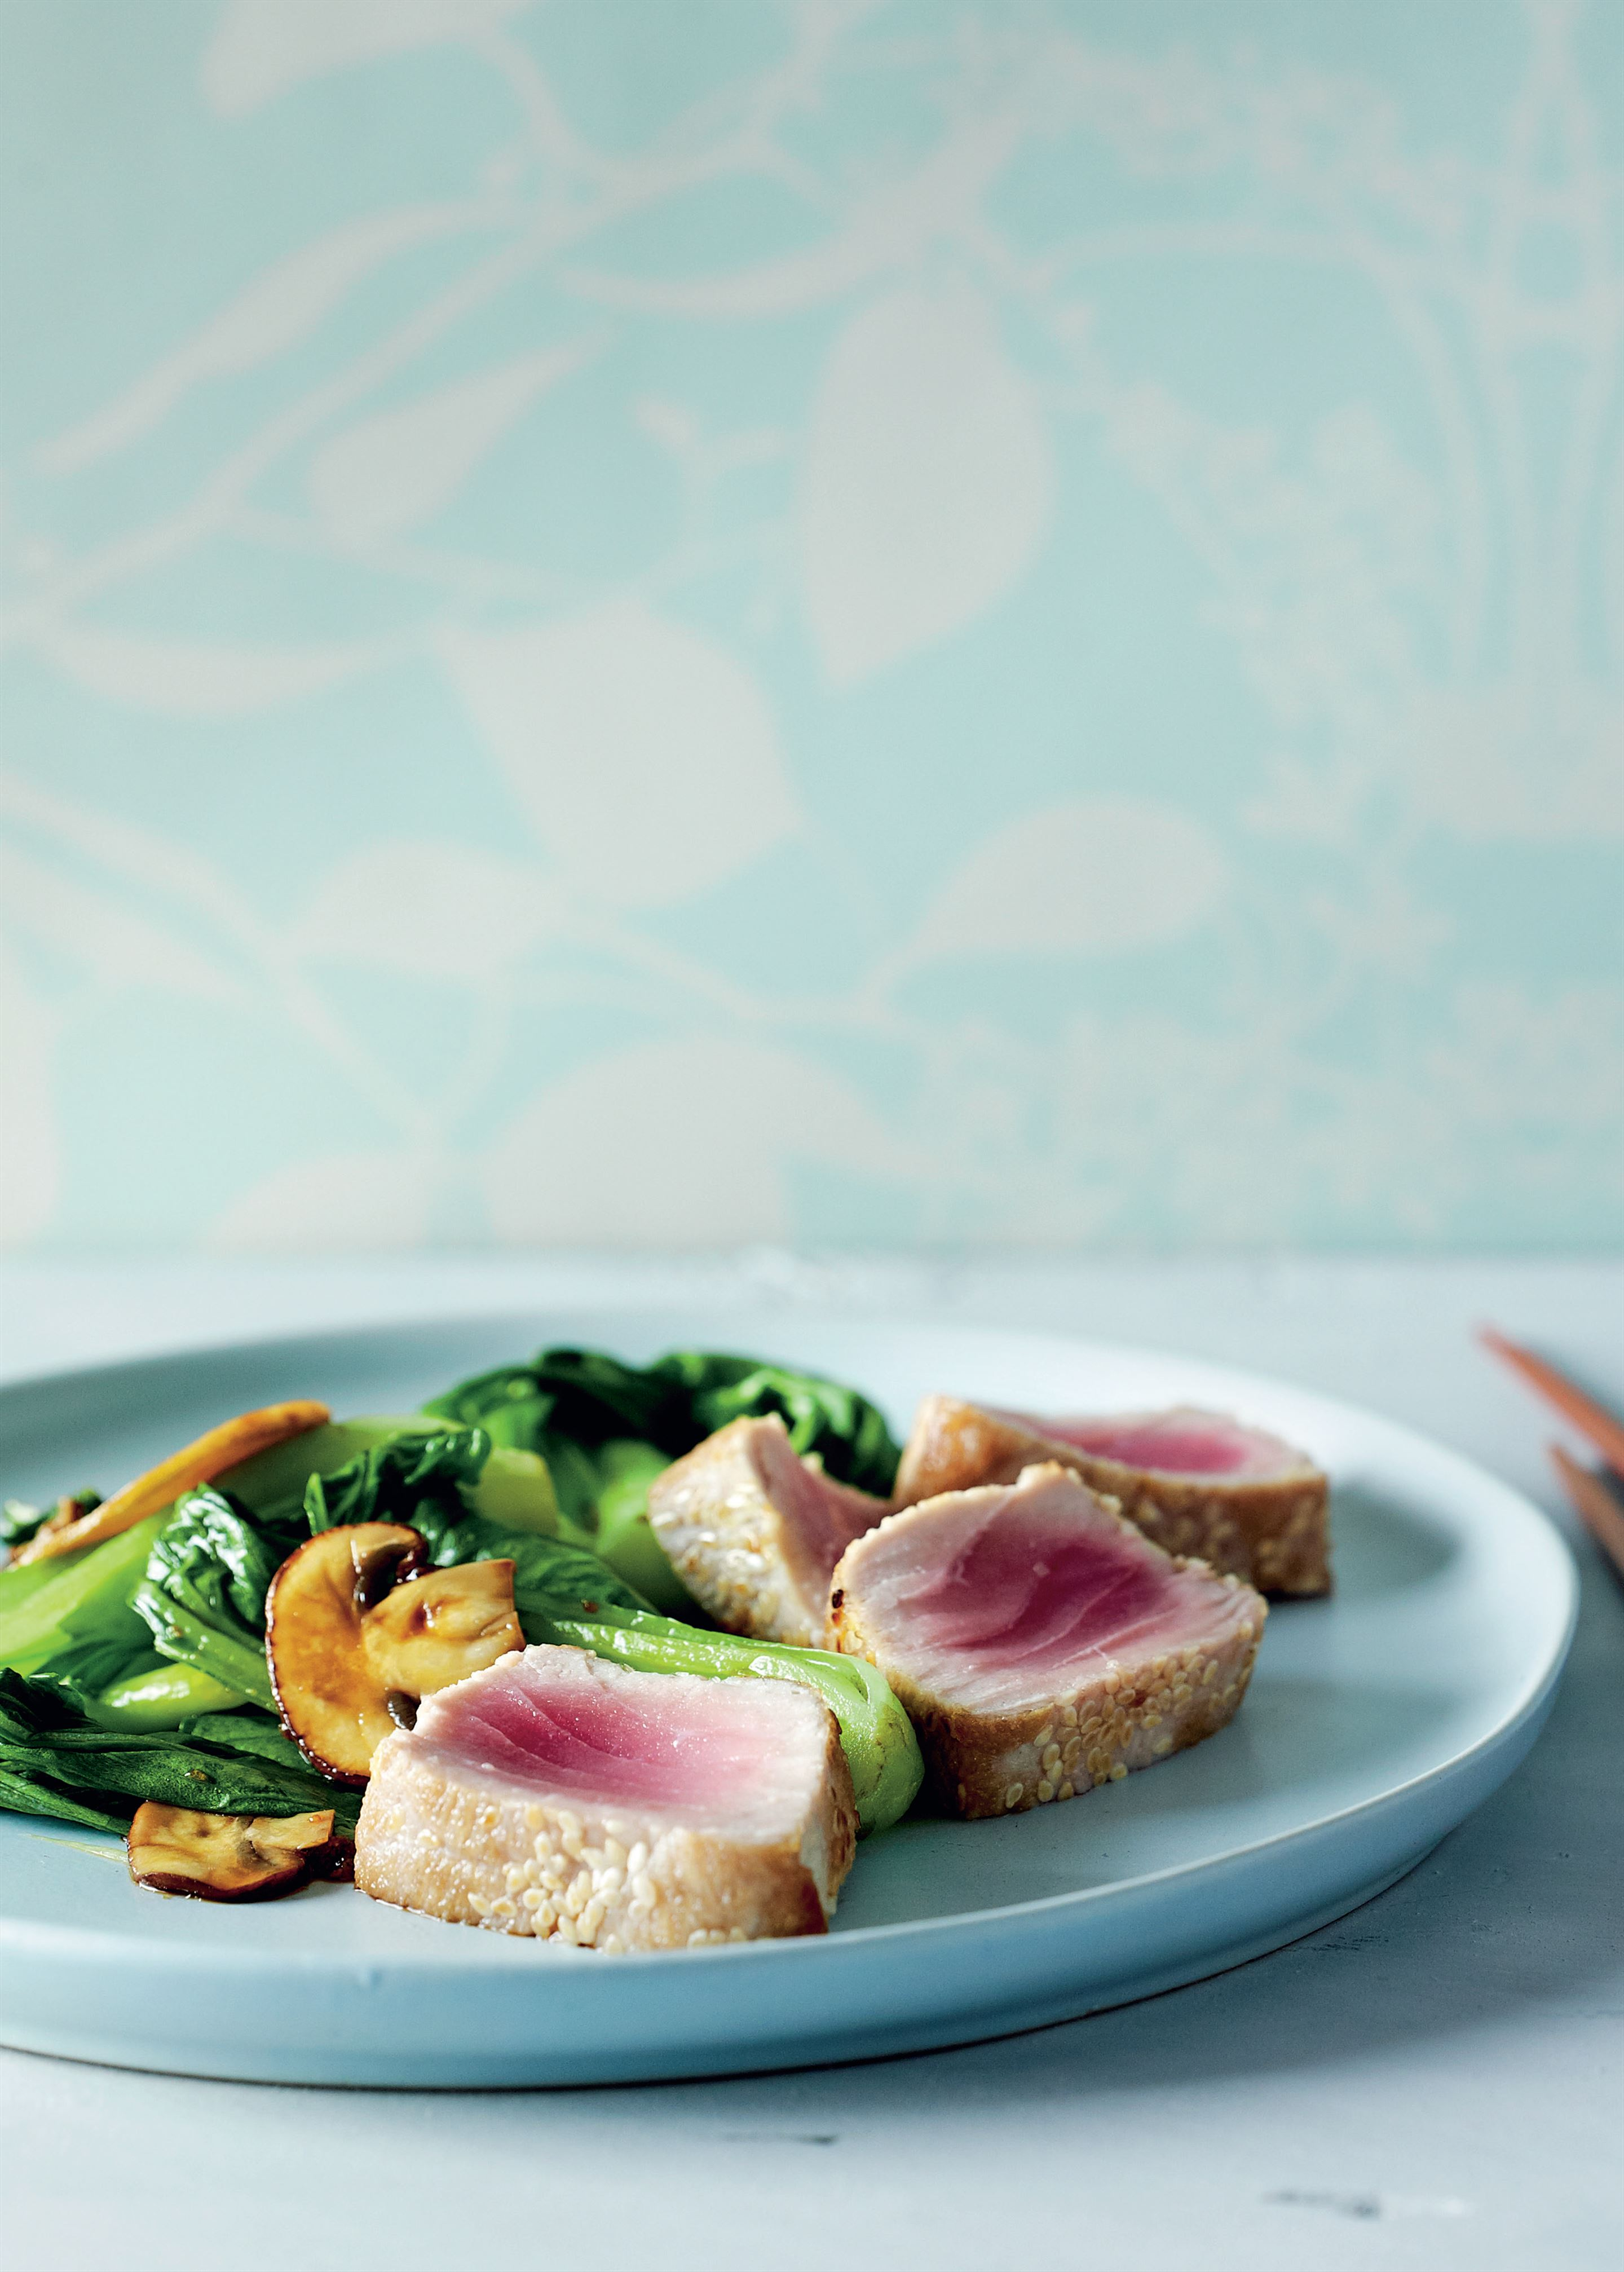 Seared tuna with stir-fried Asian greens